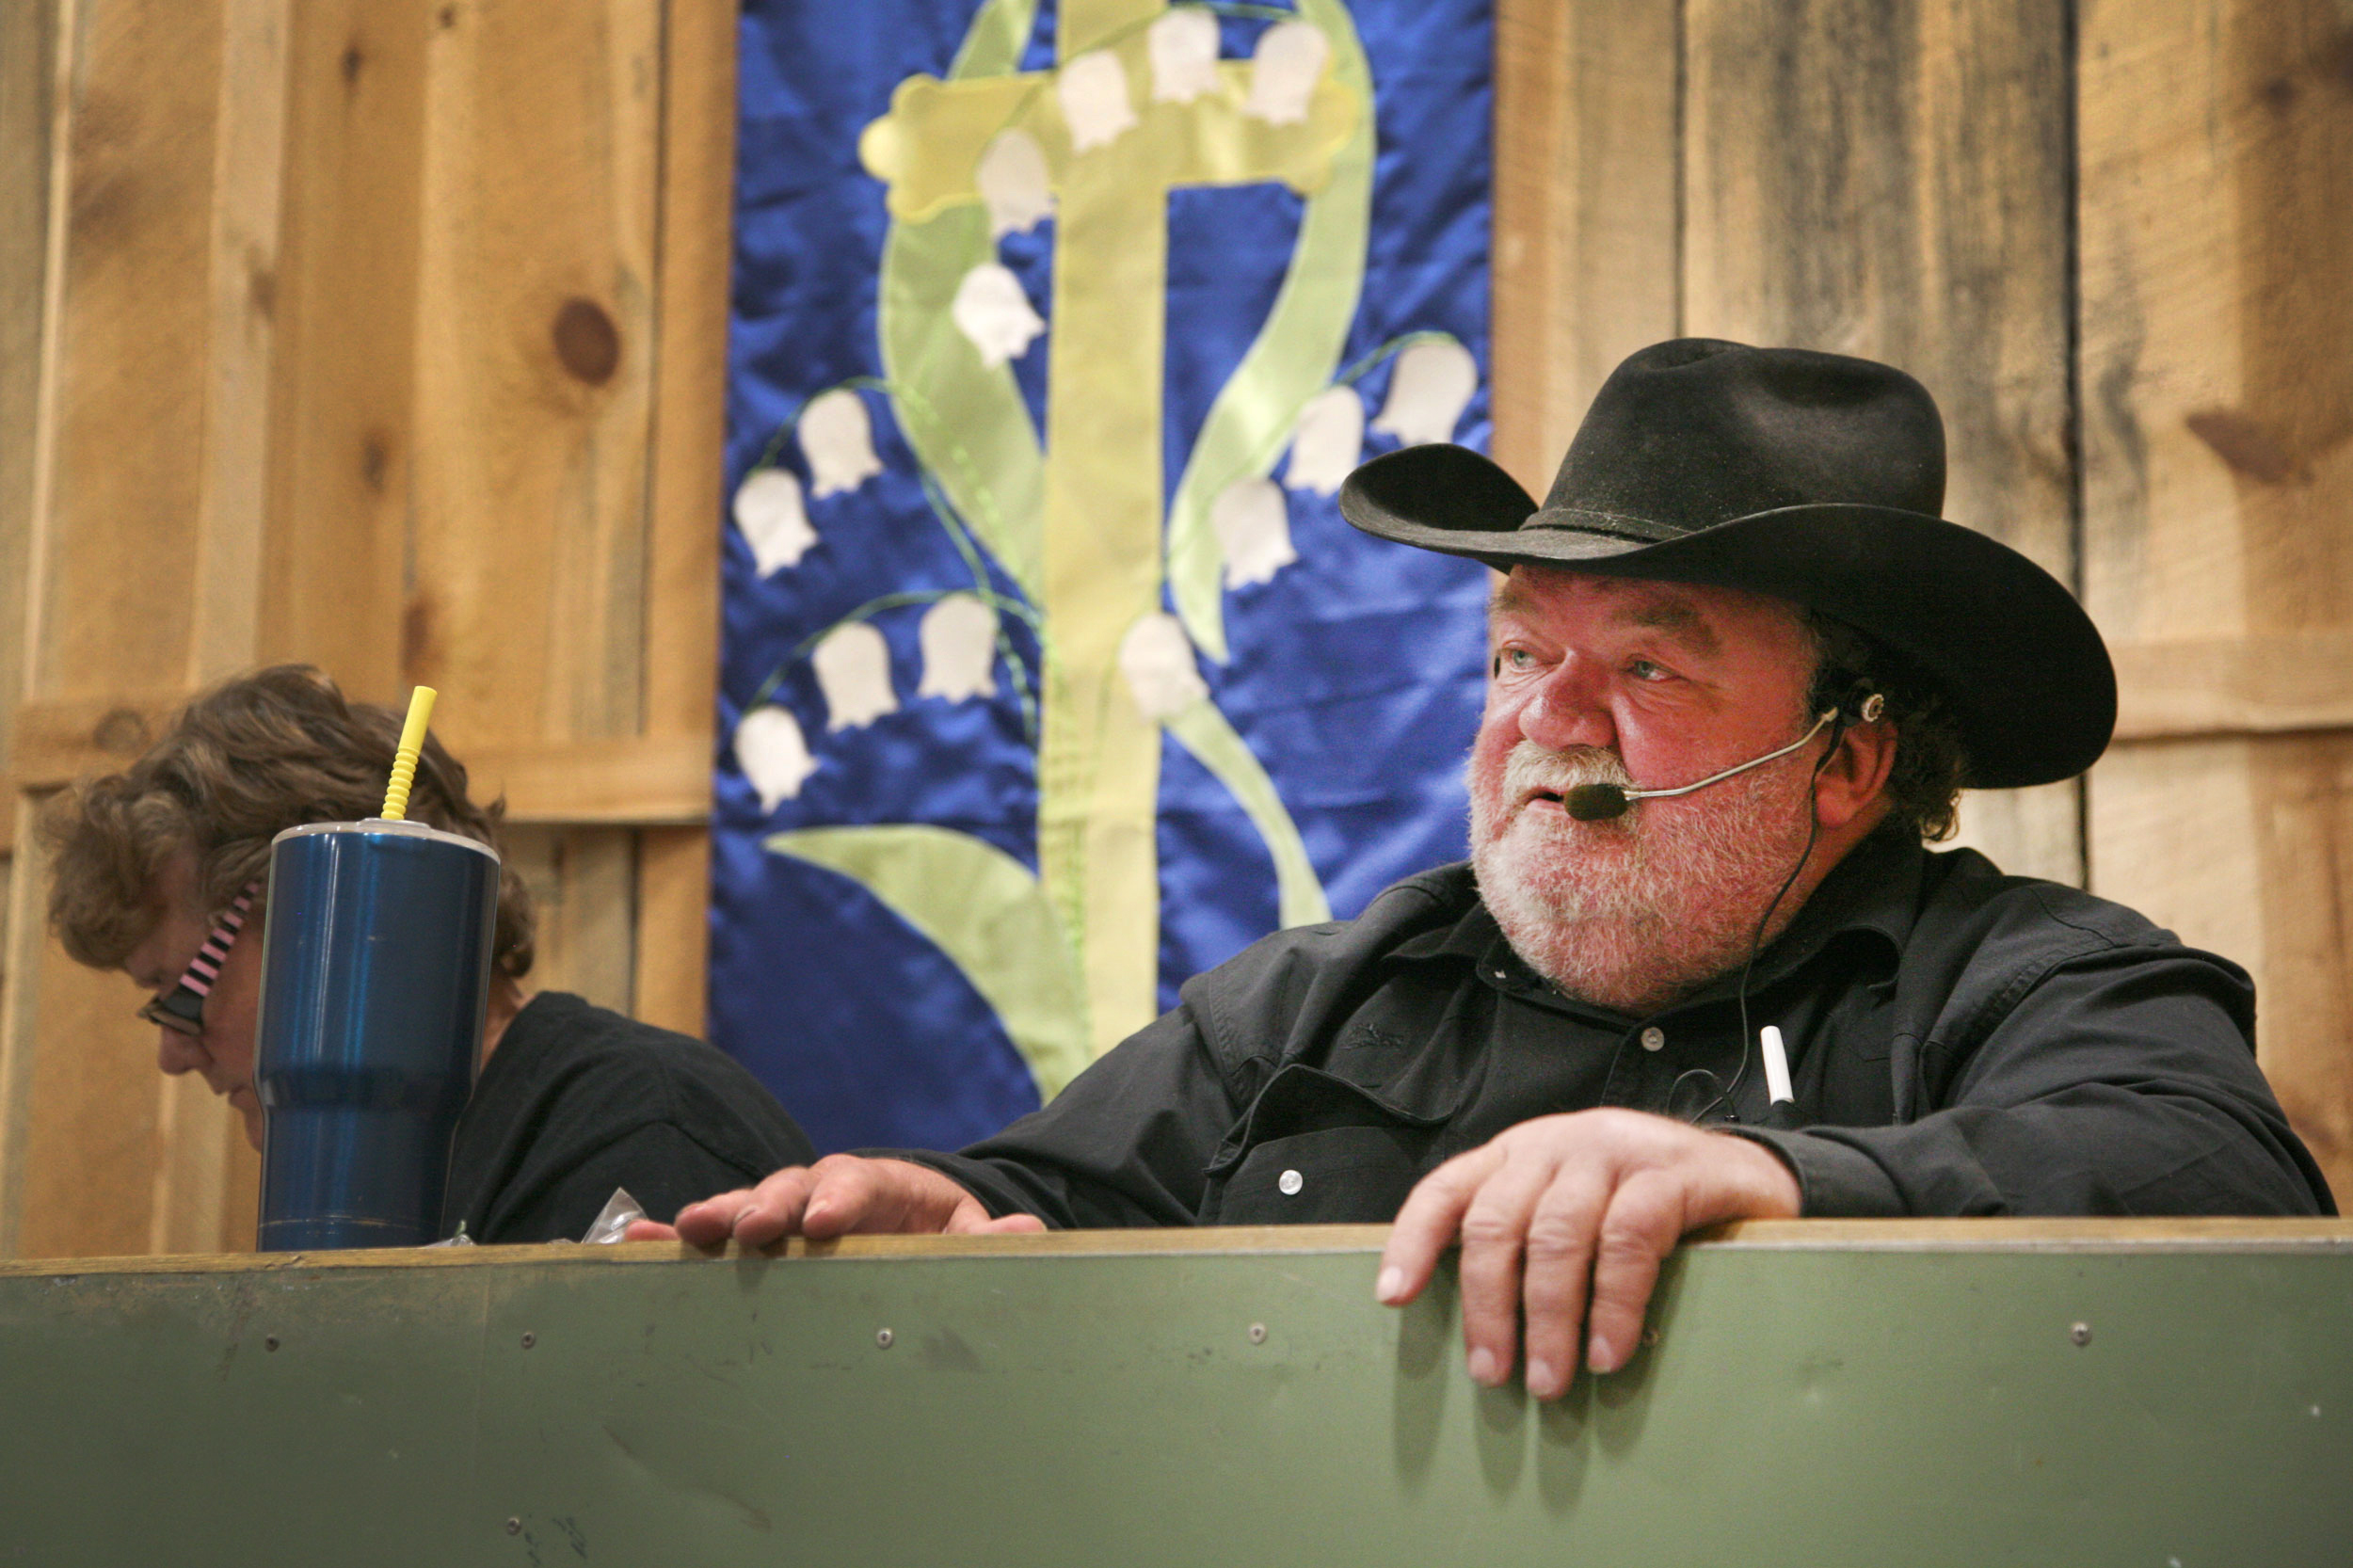 Glenn Miles leads an auction recently at Backcountry Good Trading in Hotchkiss, selling off everything from rifles and saddles to Christmas ornaments and decorative sweaters.